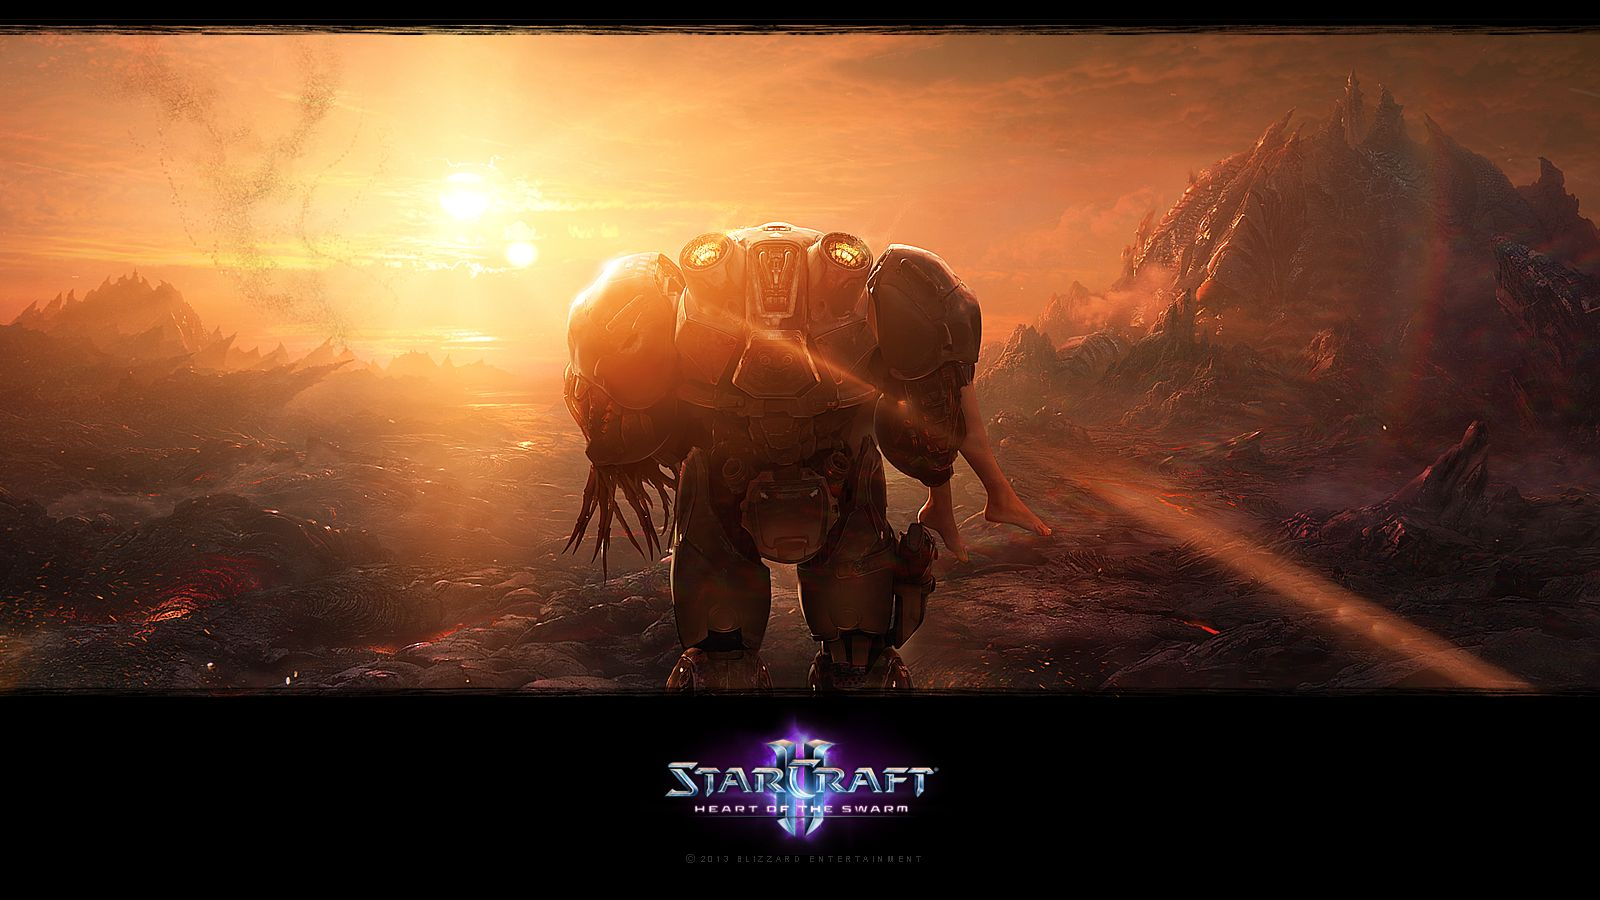 Starcraft Wallpapers